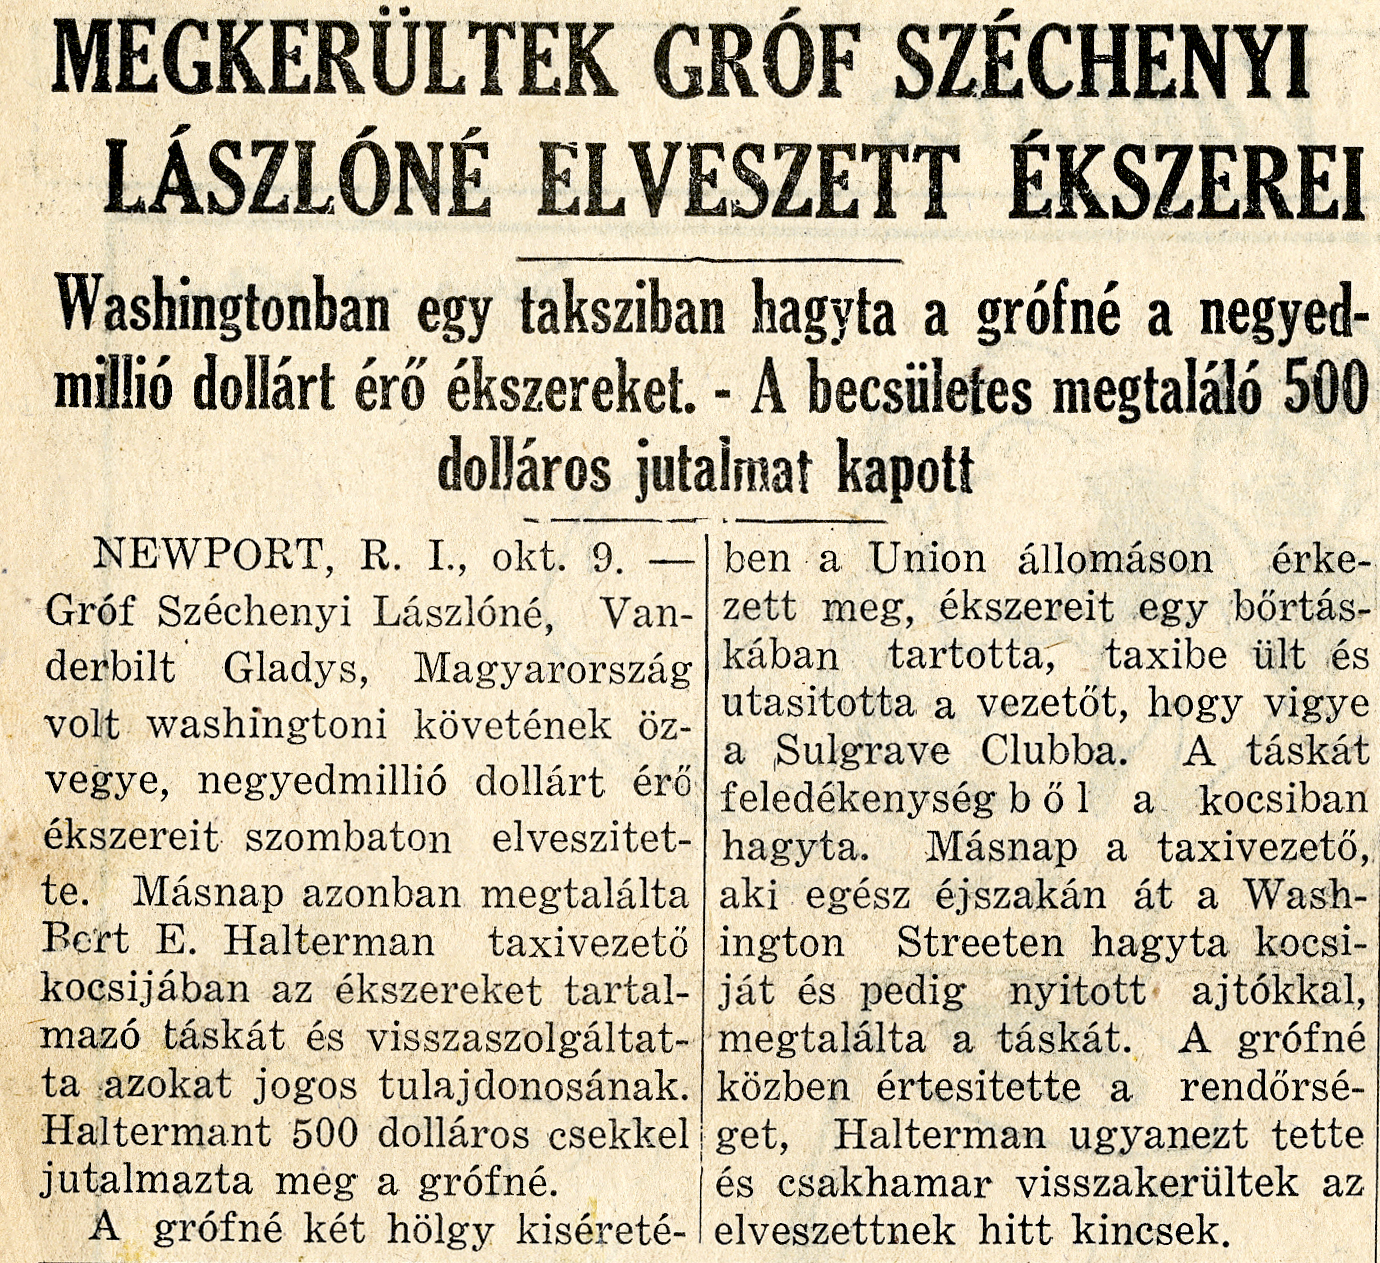 http://files.hungarianarchives.org/hungarianarchives/HUNGARIAN PAPERS/AHL_AMN/AHL_CONTR_AMN_Articles_019.jpg